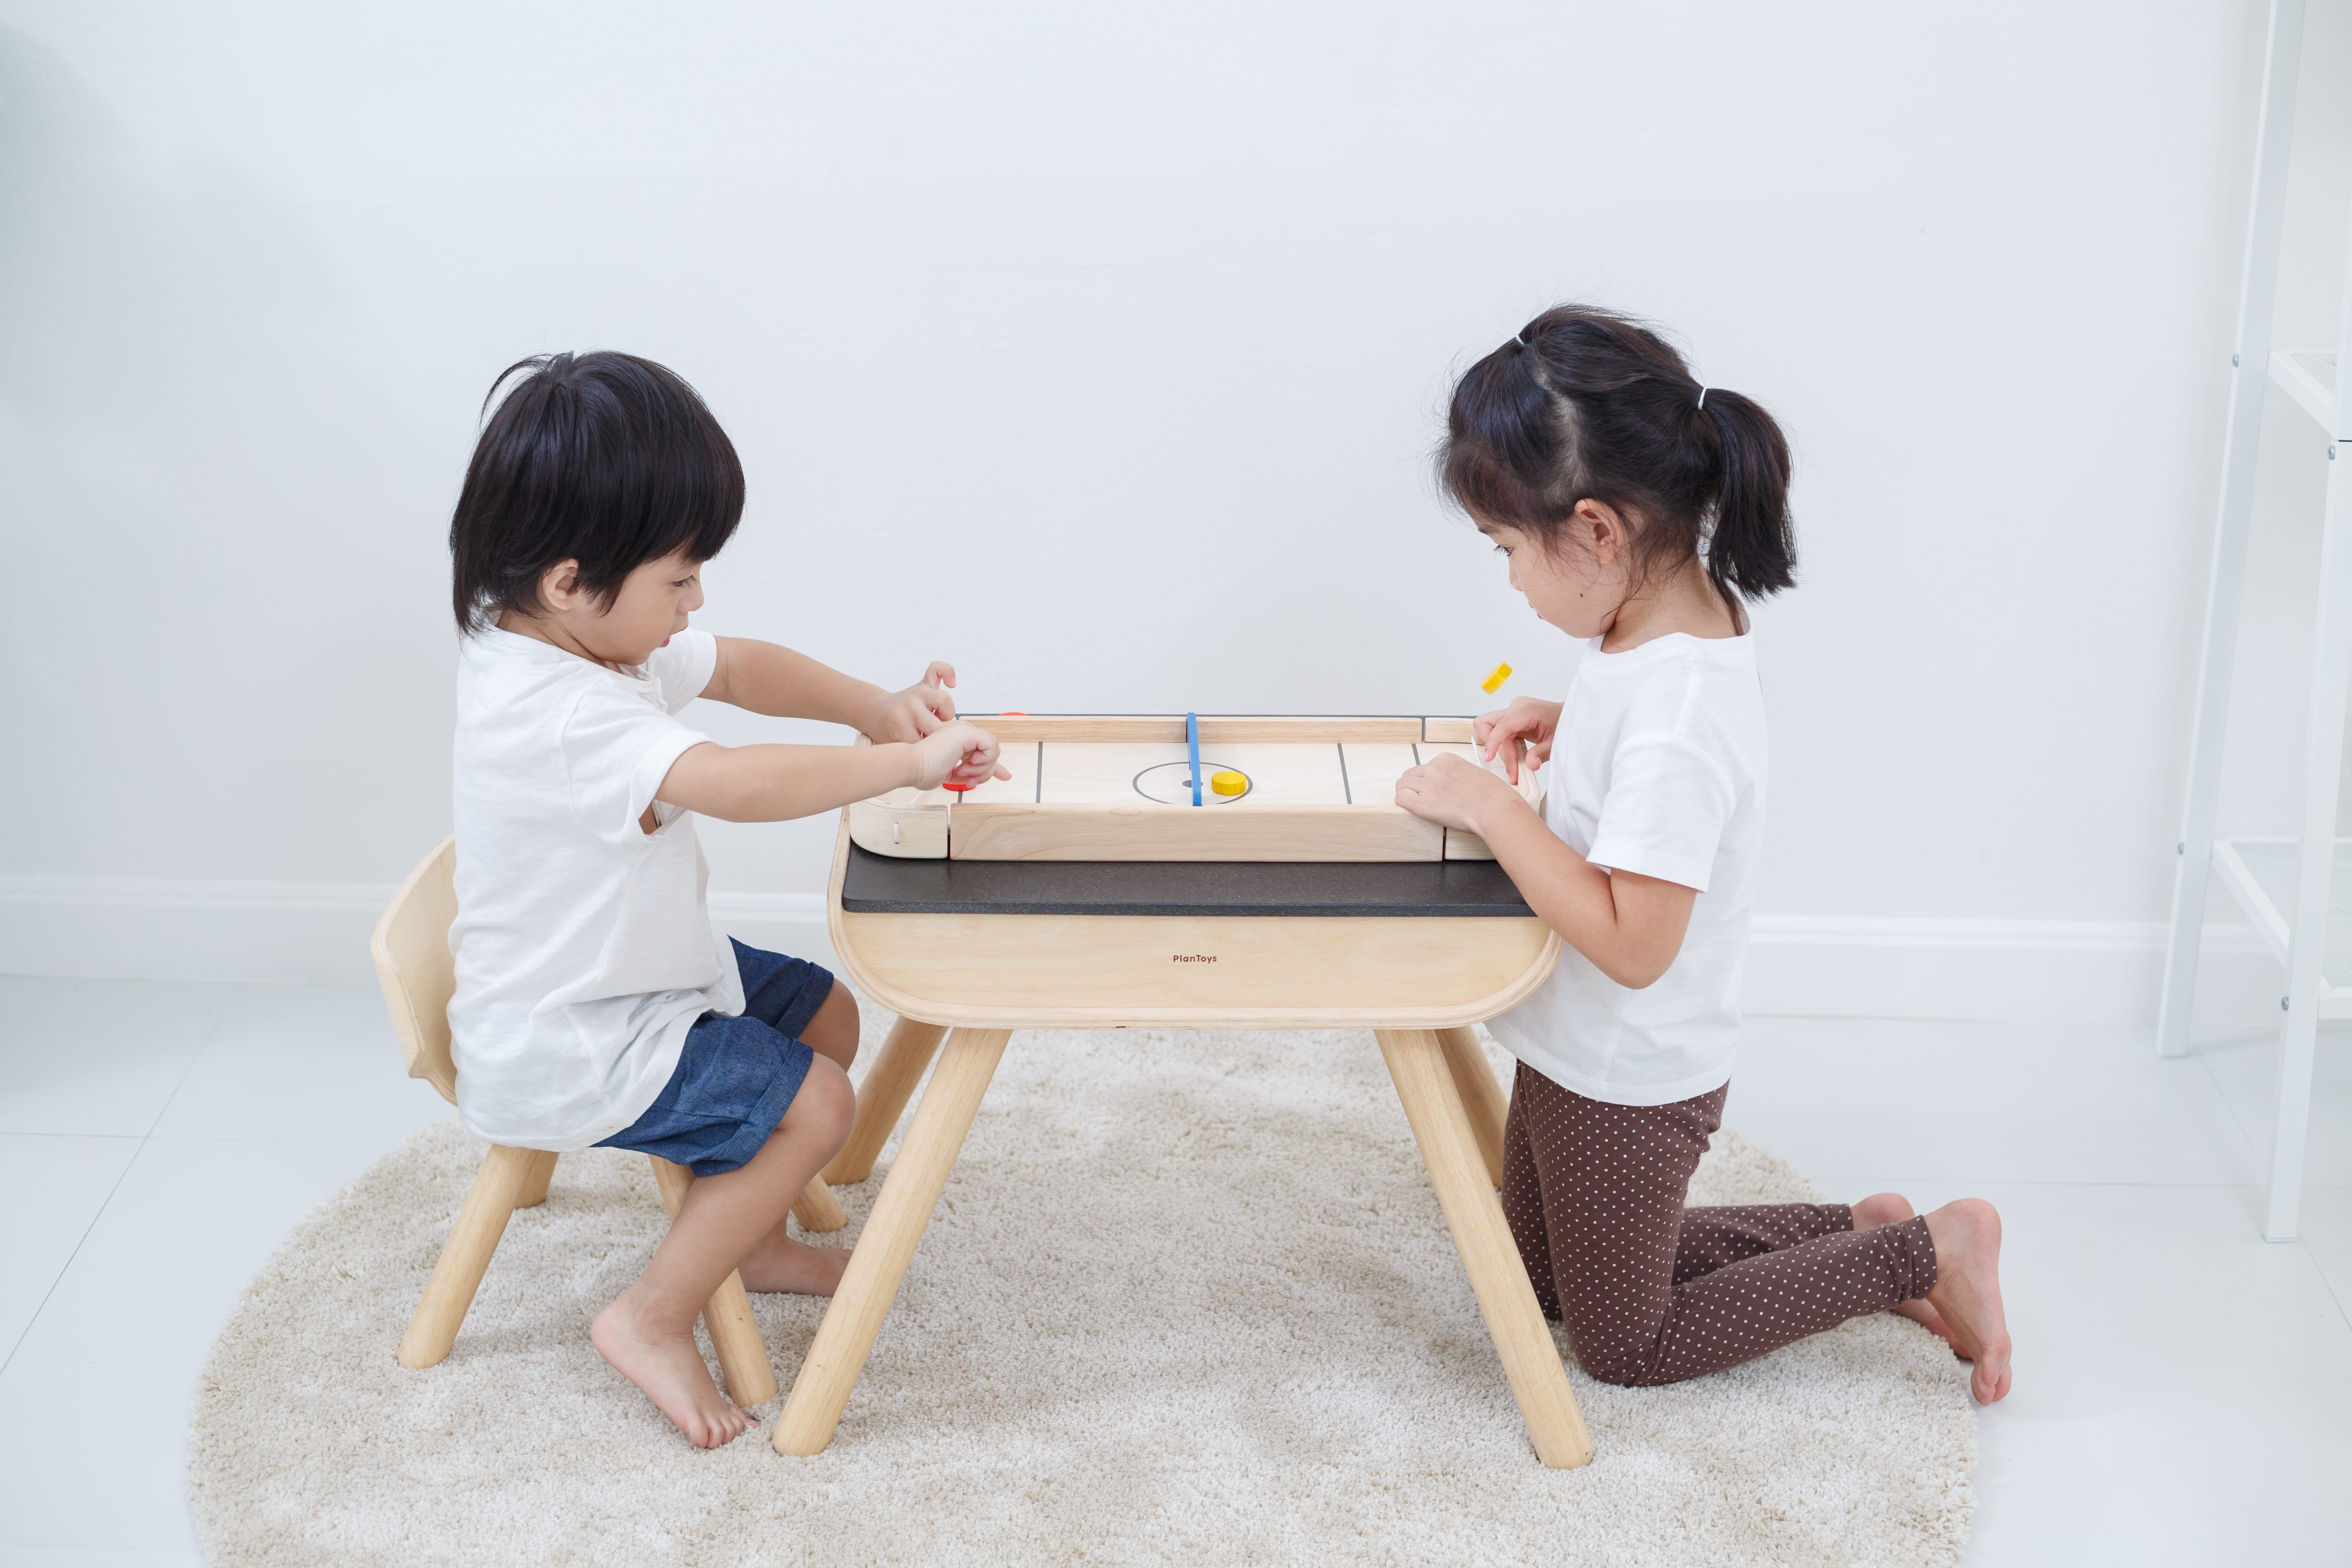 4626_PlanToys_2-IN-1_SHUFFLEBOARD-GAME_Game_and_Puzzles_Fine_Motor_Coordination_Social_Language_and_Communications_Mathematical_3yrs_Wooden_toys_Education_toys_Safety_Toys_Non-toxic_2.jpg